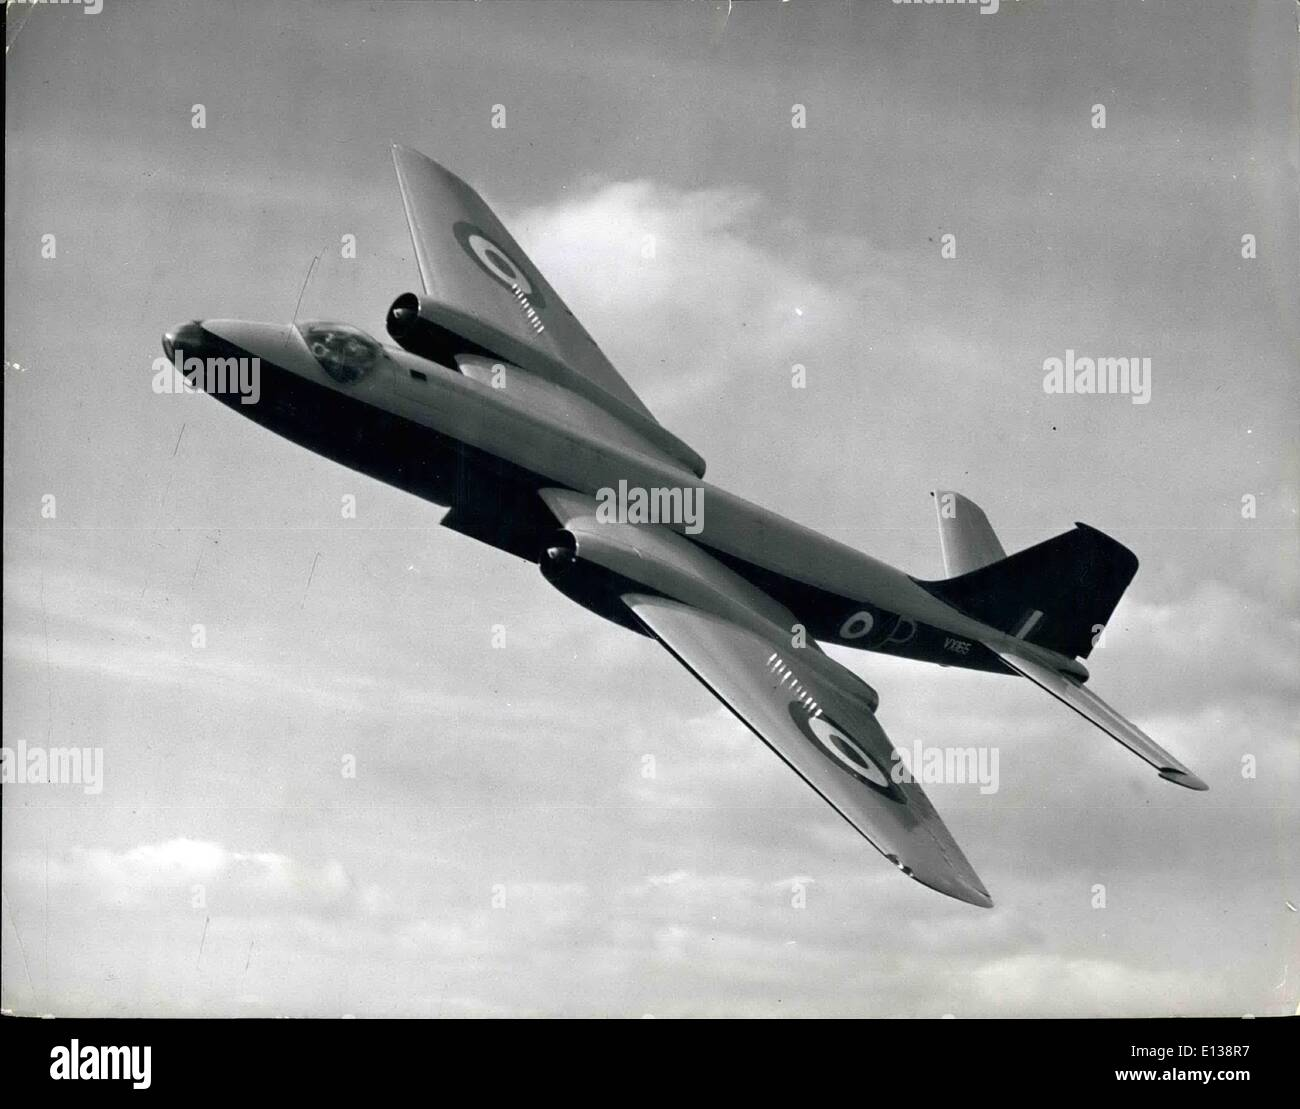 Feb. 29, 2012 - The Canberra jet bomber is a fine sight in flight. She is powered by two Rolls-Royce Avon axisl-flow gas turbines. She has a crew of three and Bassingboura R.A.F. station is now turning out the men who will fly her. - Stock Image